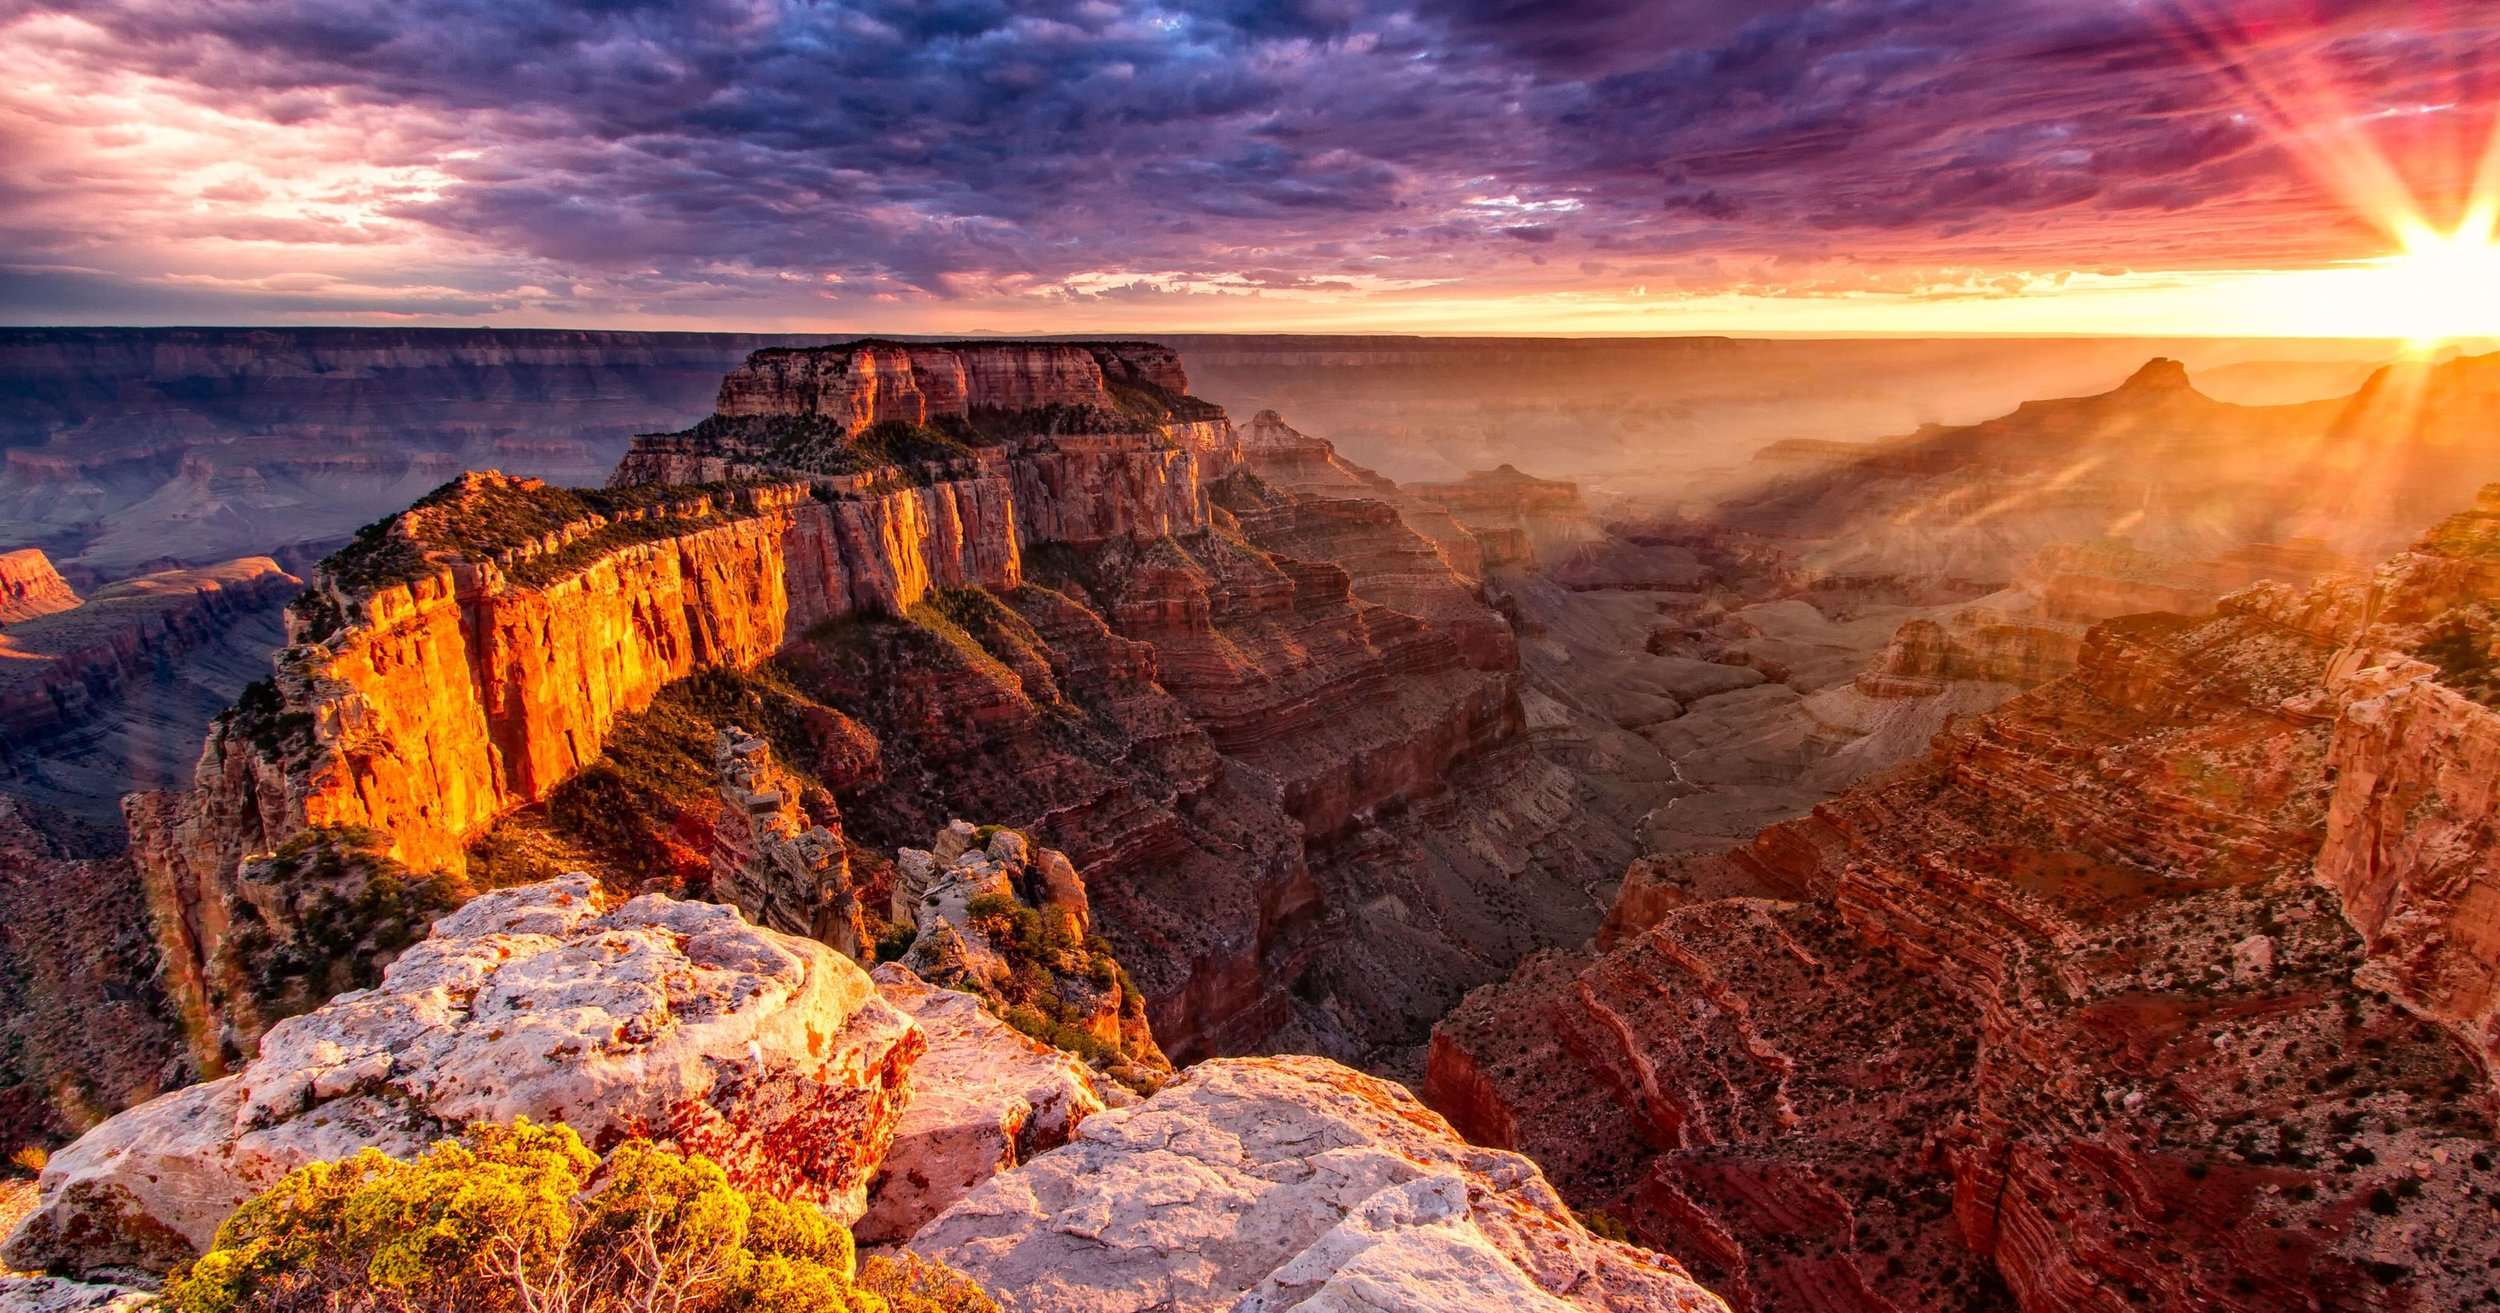 PEAK: THE GRAND CANYON - The World's most magnificent hole!DIFFICULTY: 4/5THE PLAN: Drive up to the canyon early Friday and do a sunset hike, full-day hike into the canyon Saturday, and then grab some last views before heading back via old Route 66.SCENERY: The Grand CanyonFUN FACT: 2019 is Grand Canyon National Park's 100th anniversary!